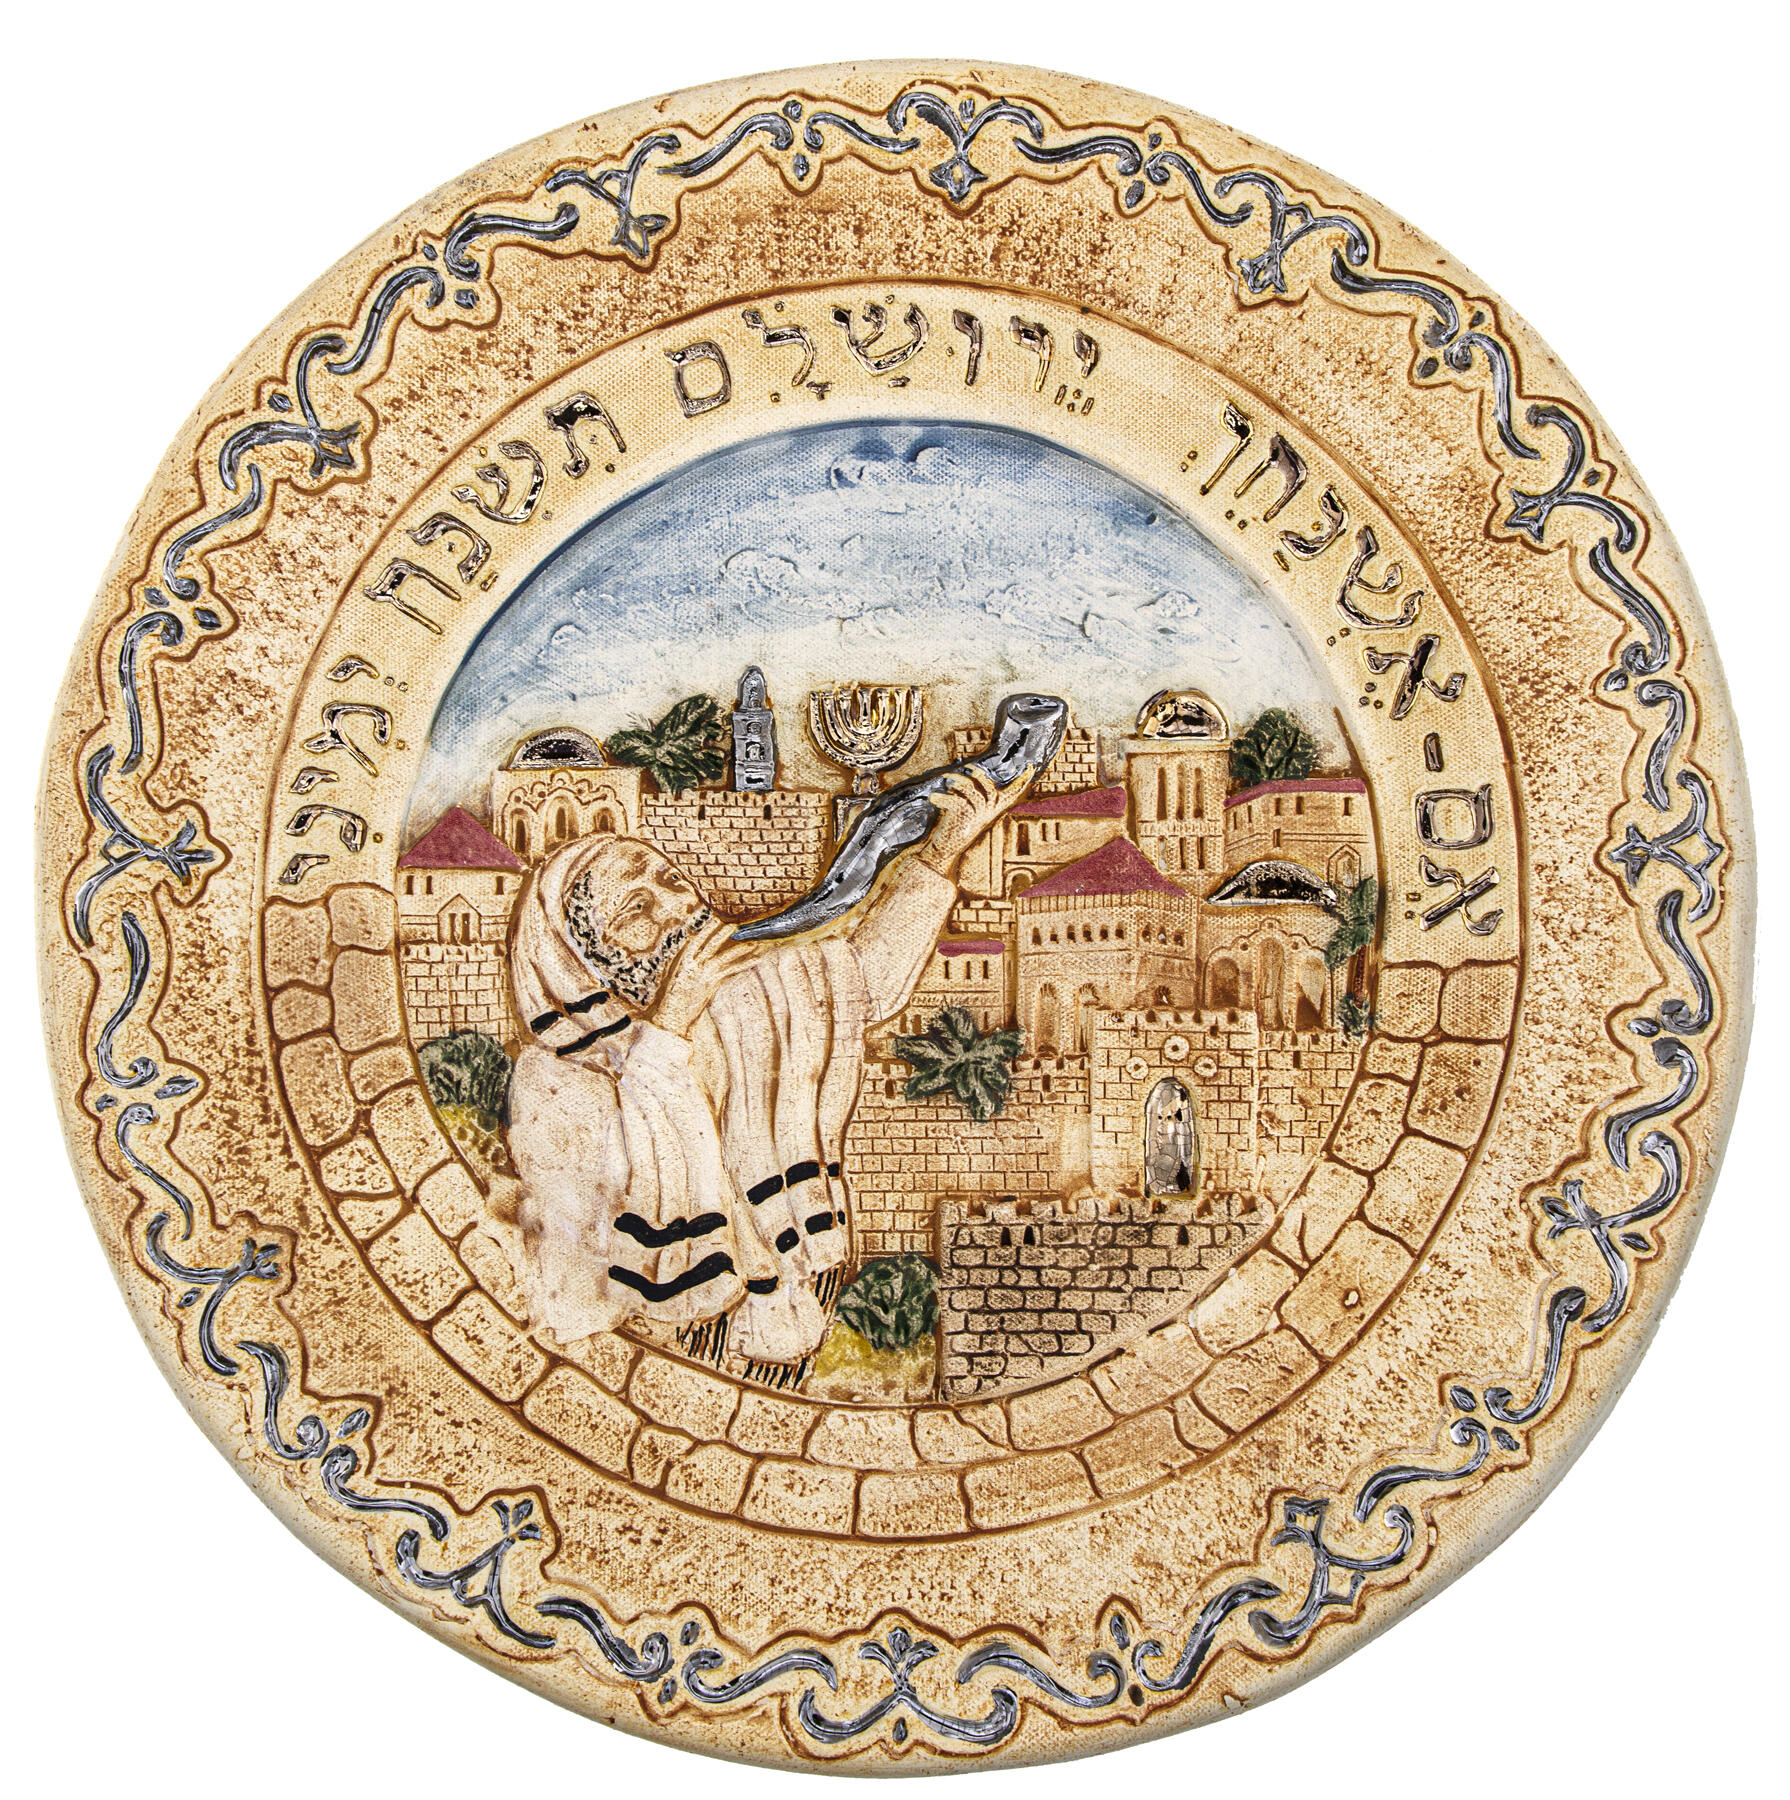 JERUSALEM PLATE WITH SHOFAR size: 40cm